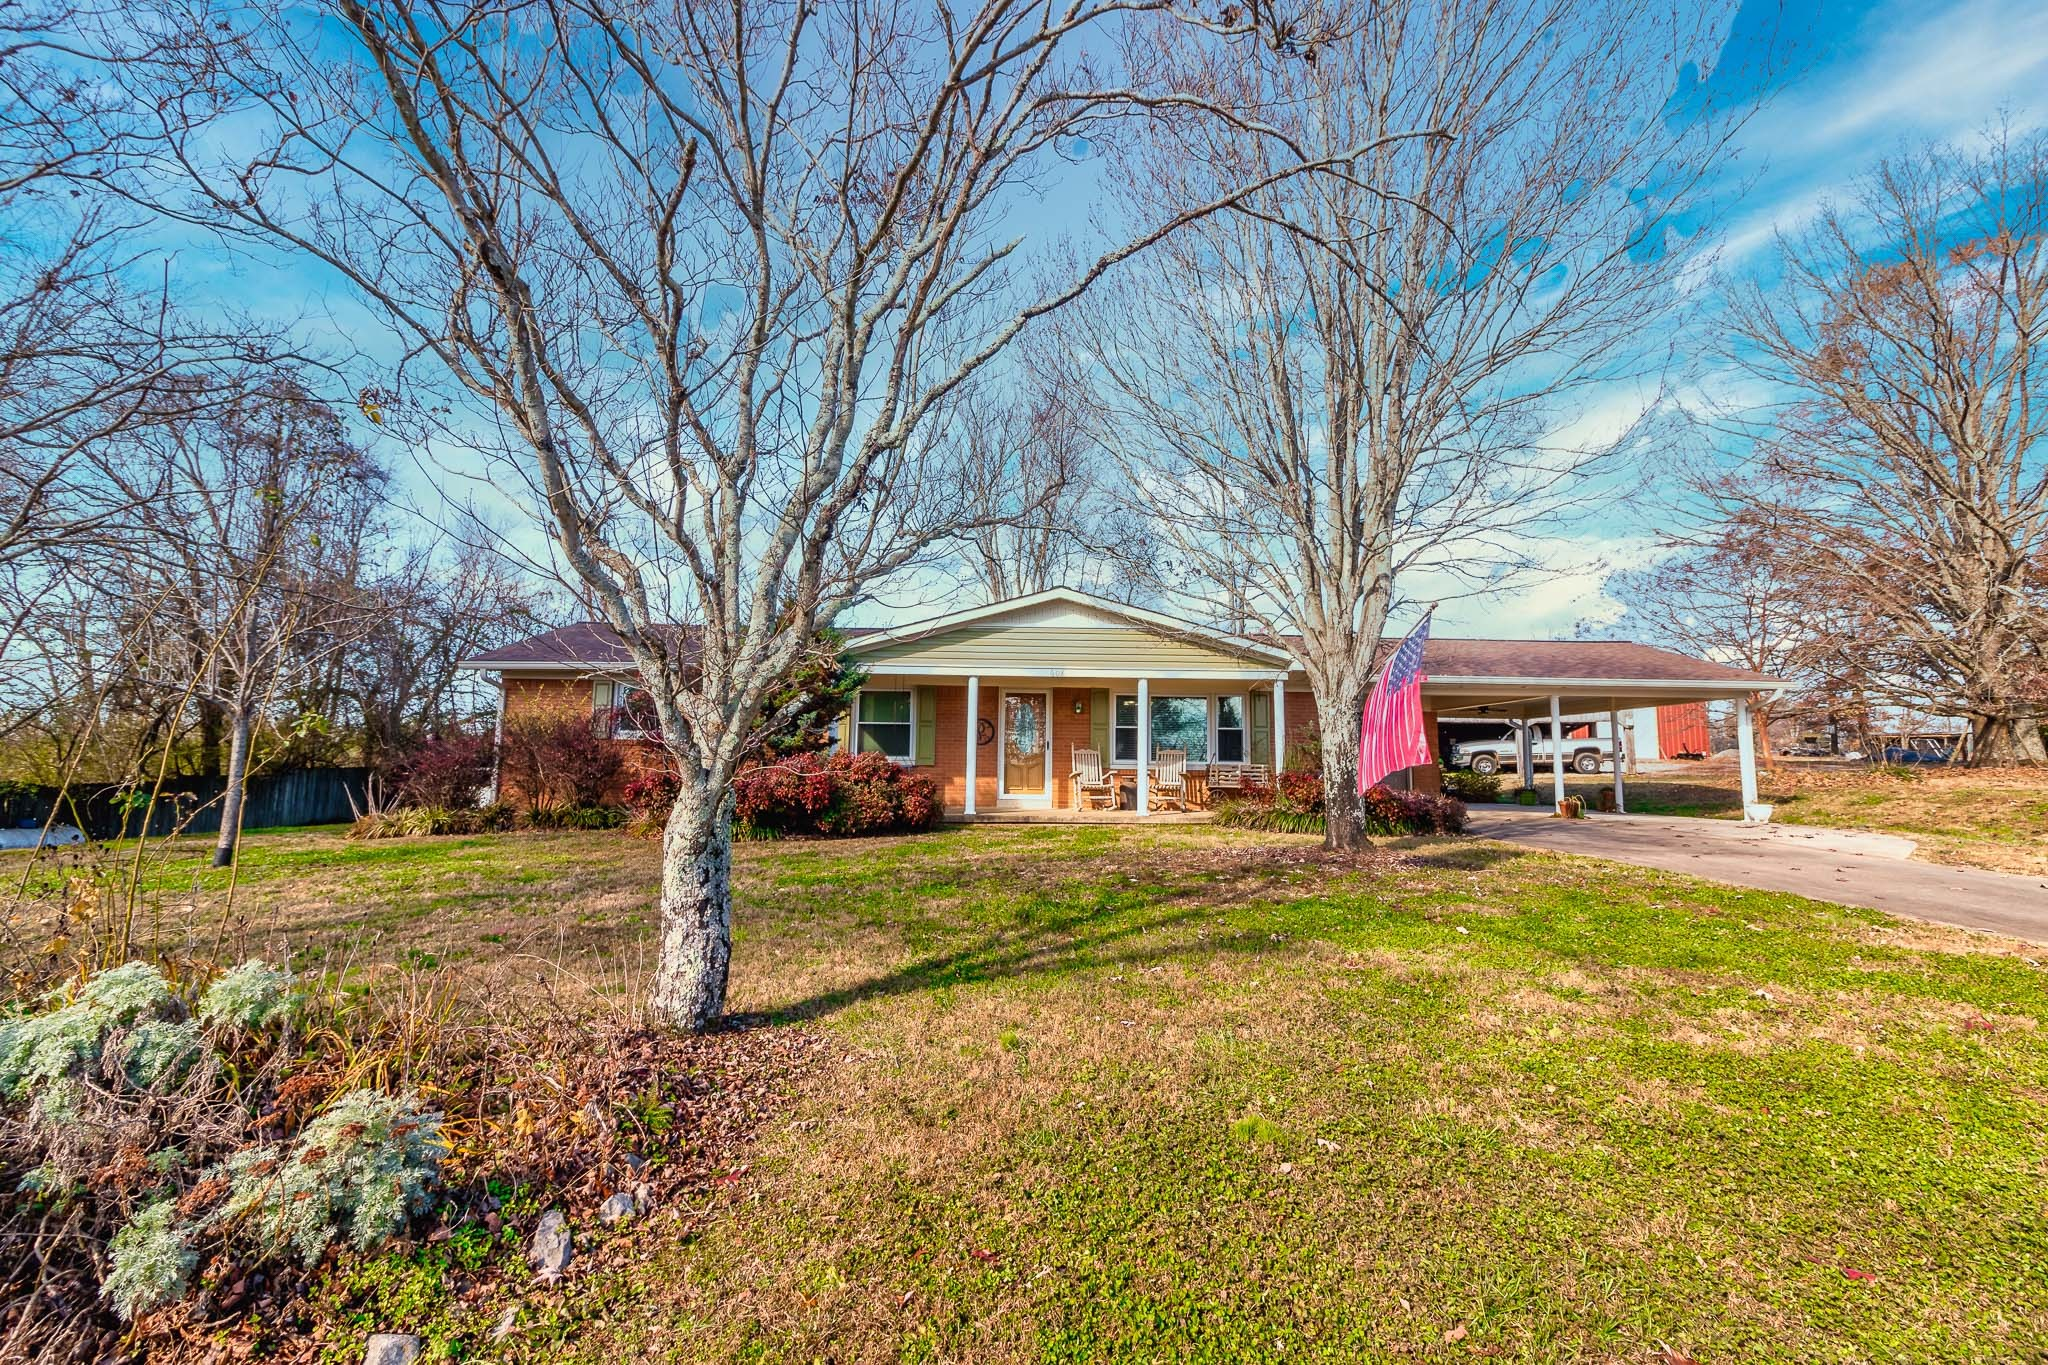 608 Old Florence Pulaski Rd, Leoma, Tennessee 38468, 3 Bedrooms Bedrooms, ,2 BathroomsBathrooms,Single Family,For Sale,608 Old Florence Pulaski Rd,2,2212091